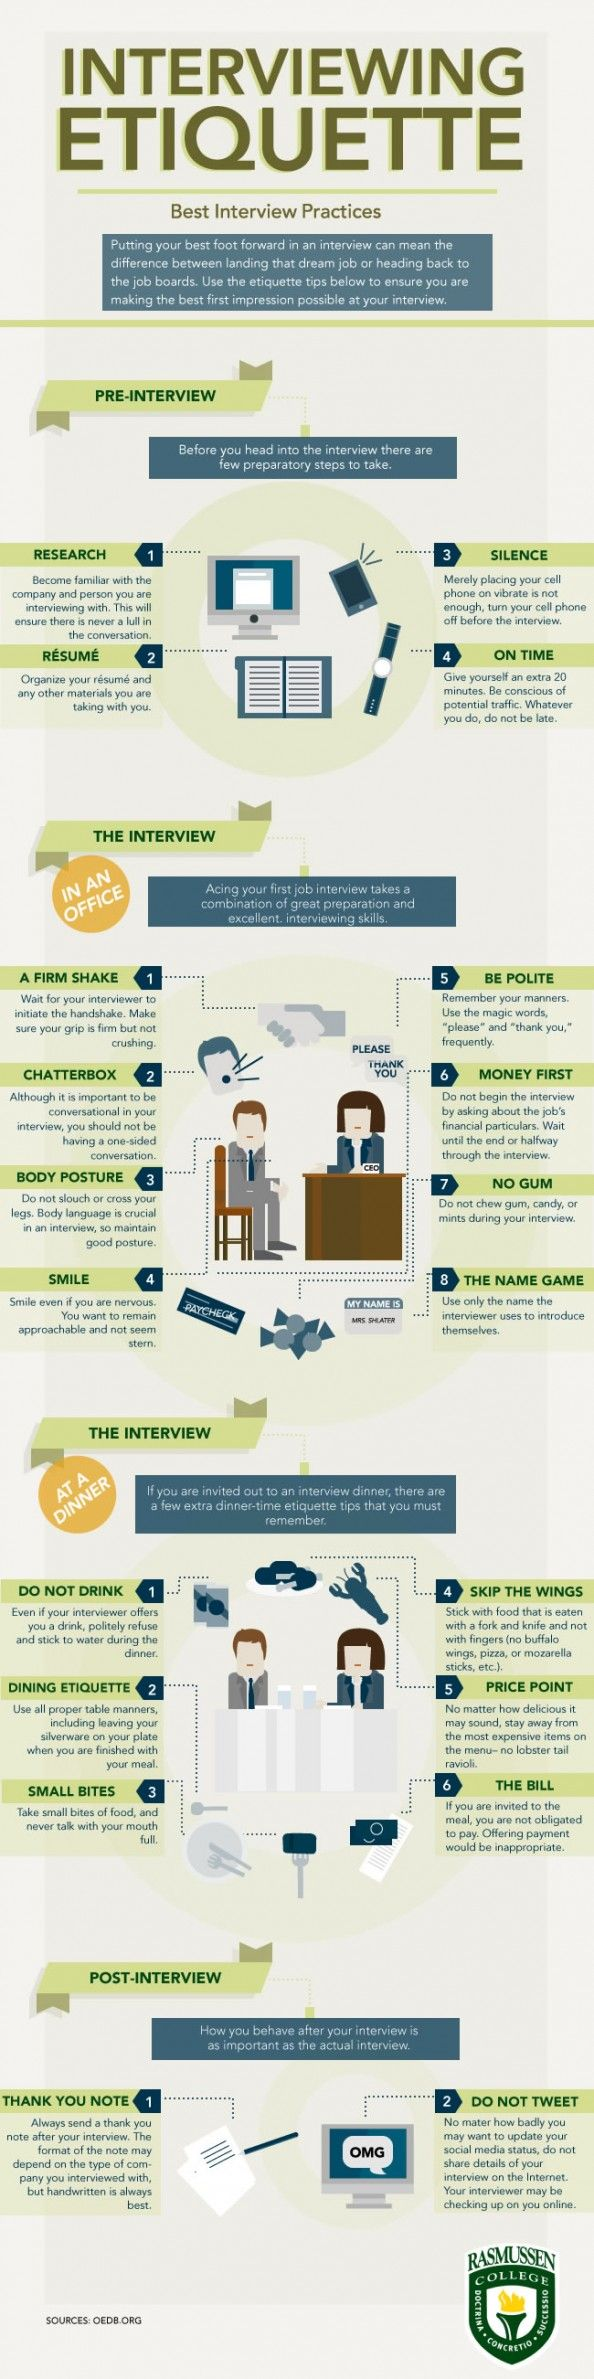 best images about interview questions interview interviewing etiquette use these etiquette tips for interviews to ensure you are making the